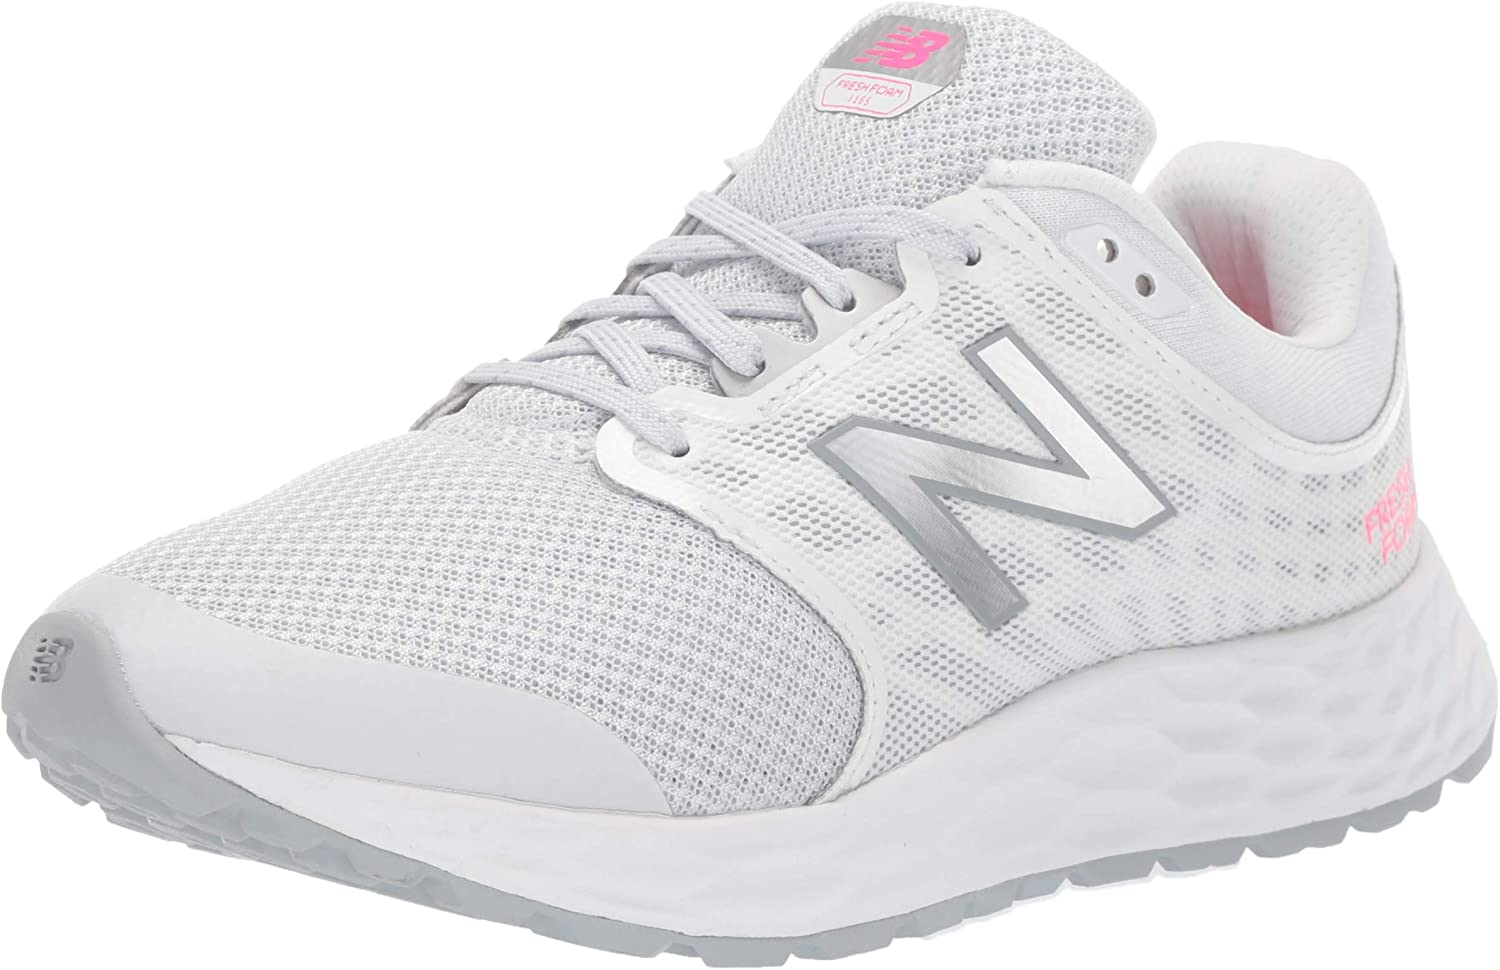 New Balance Women s 1165v1 Fresh Foam Walking Shoe